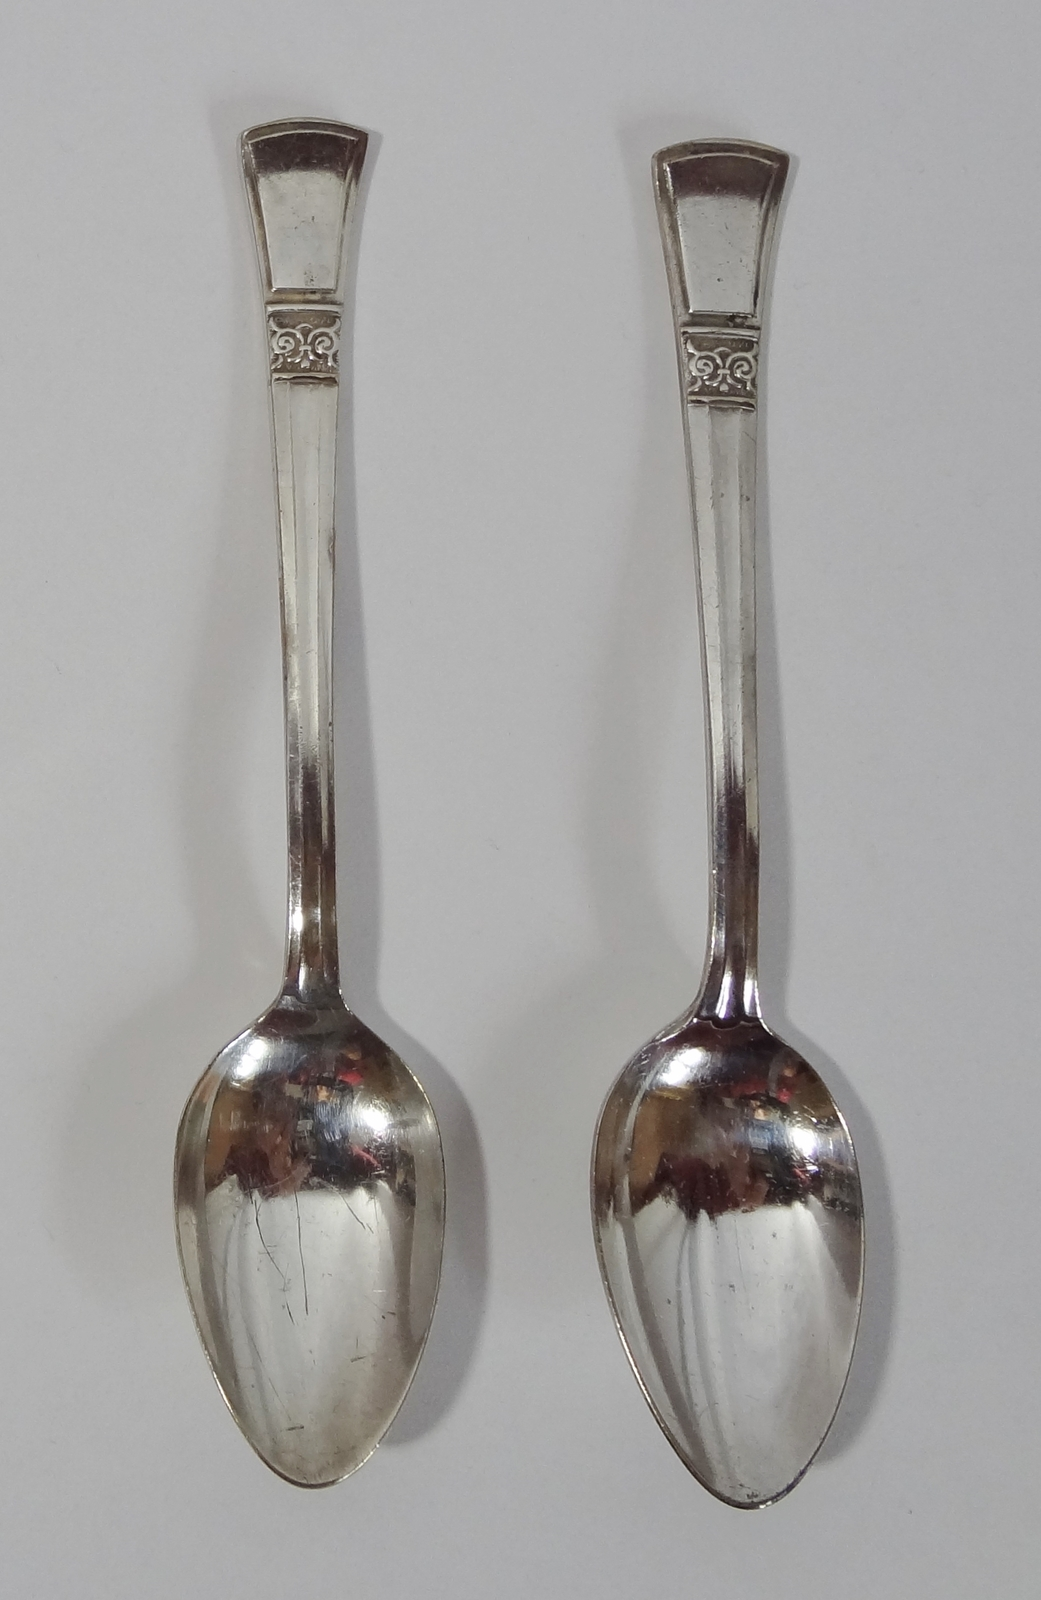 Primary image for County Andora Silver Plate Spoons Set of Two Tableware Cutlery Flatware